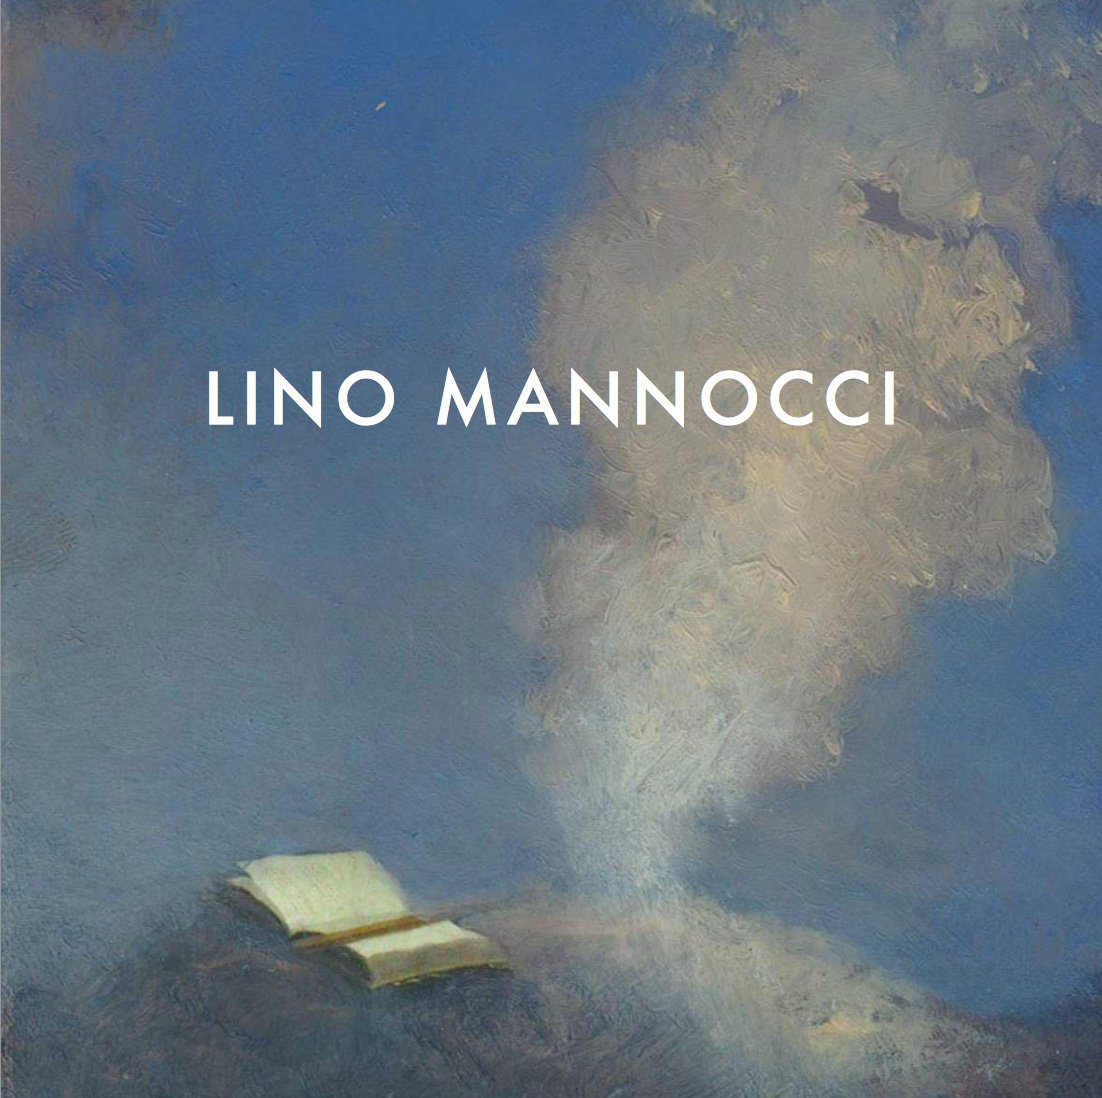 Copy of Lino Mannocci at Jill Newhouse Gallery